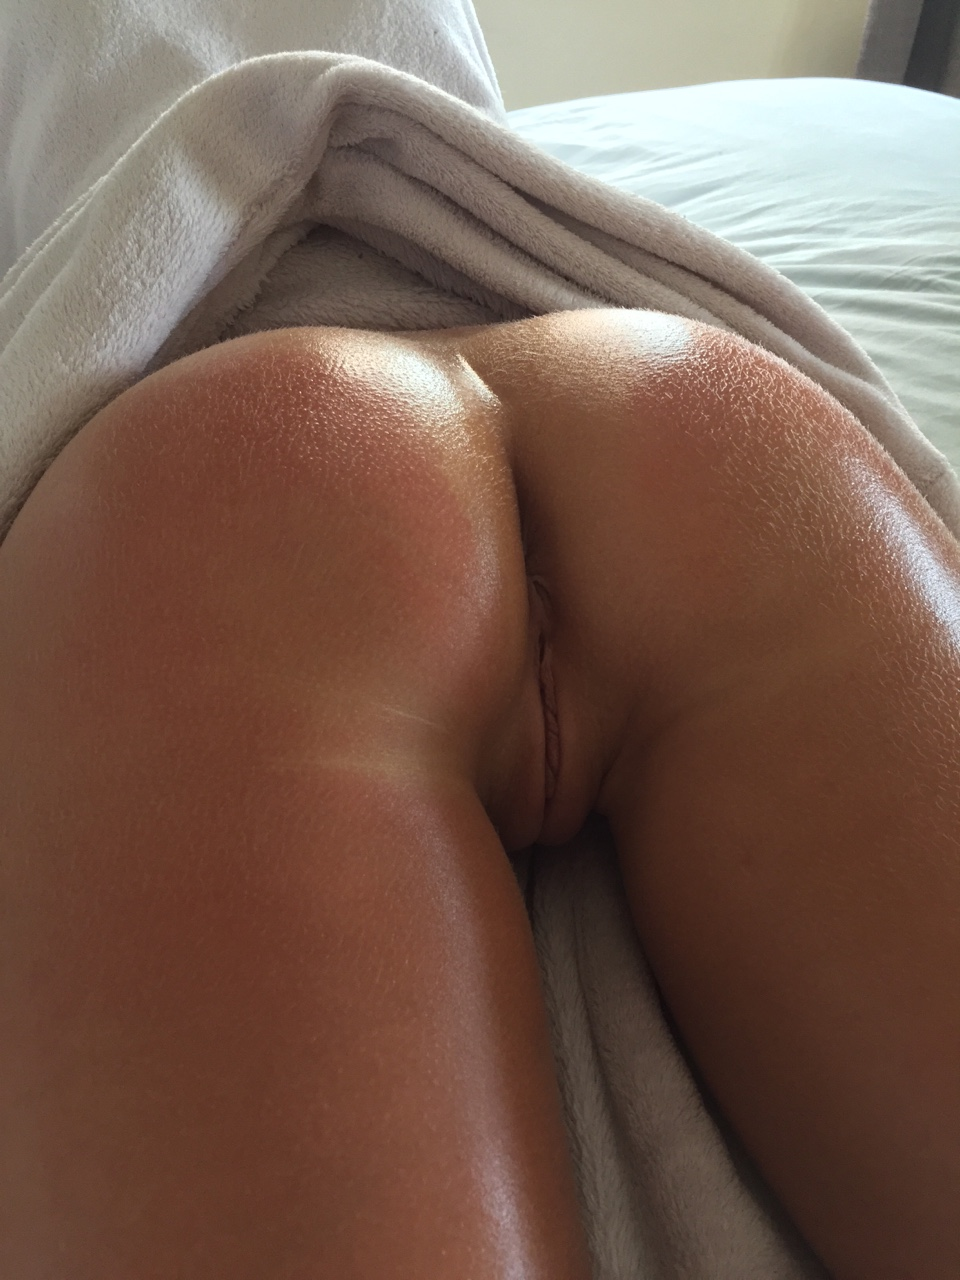 hardcore interracial sex black and white Amateur, Attitude, Back, Beautiful, Brunette, Dwh, Firm, Firmbutt, Fit, Highheels, Highheels, Hipcocked, Hotfistingtime, Ineedtobethere, Legs, Leosfavs, Lovely, Notanlines, Onlyheels, Sexy, Skinny, Smallass, Spankable, Tan, Teen, Tight, Tightass, Tinywaist, Yesplease